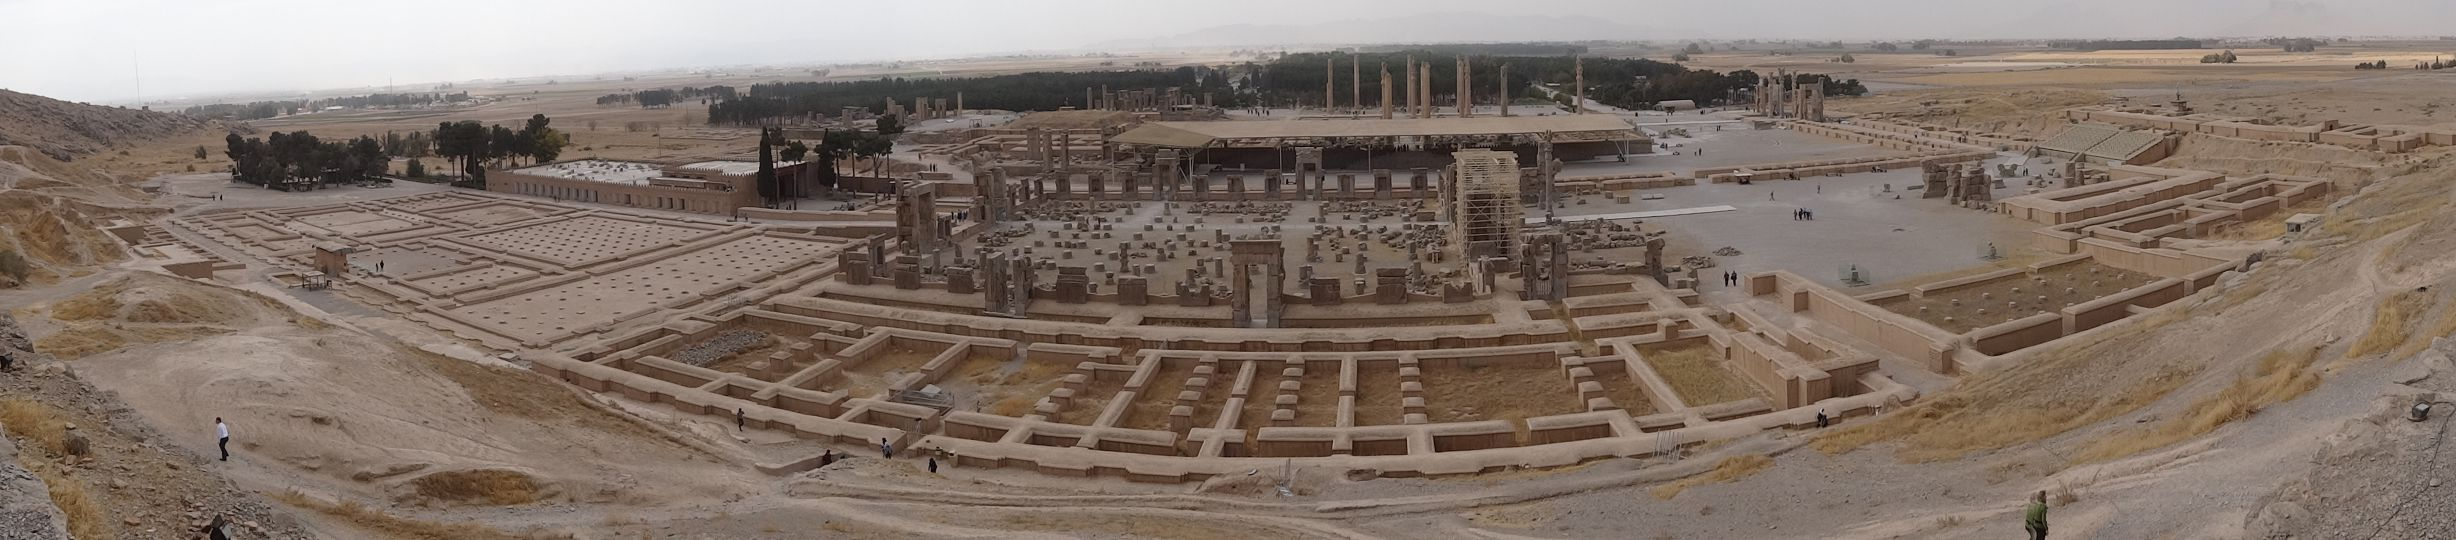 Persepolis - impressive as ruins, wonder what it looked like before